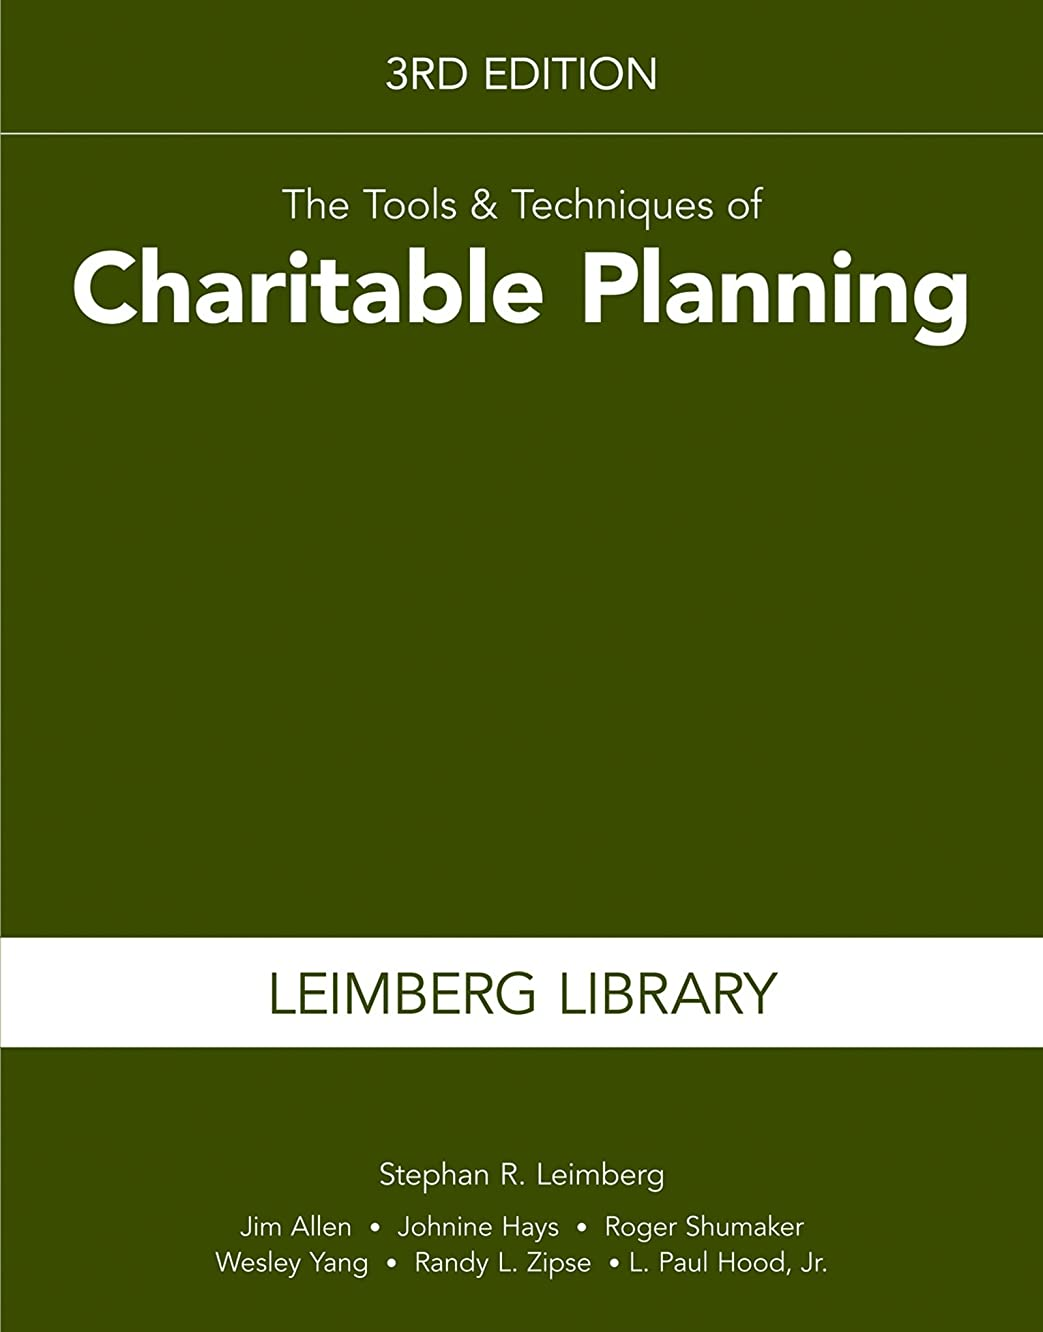 The Tools & Techniques of Charitable Planning, 3rd Edition (Leimberg Library: Tools & Techniques)